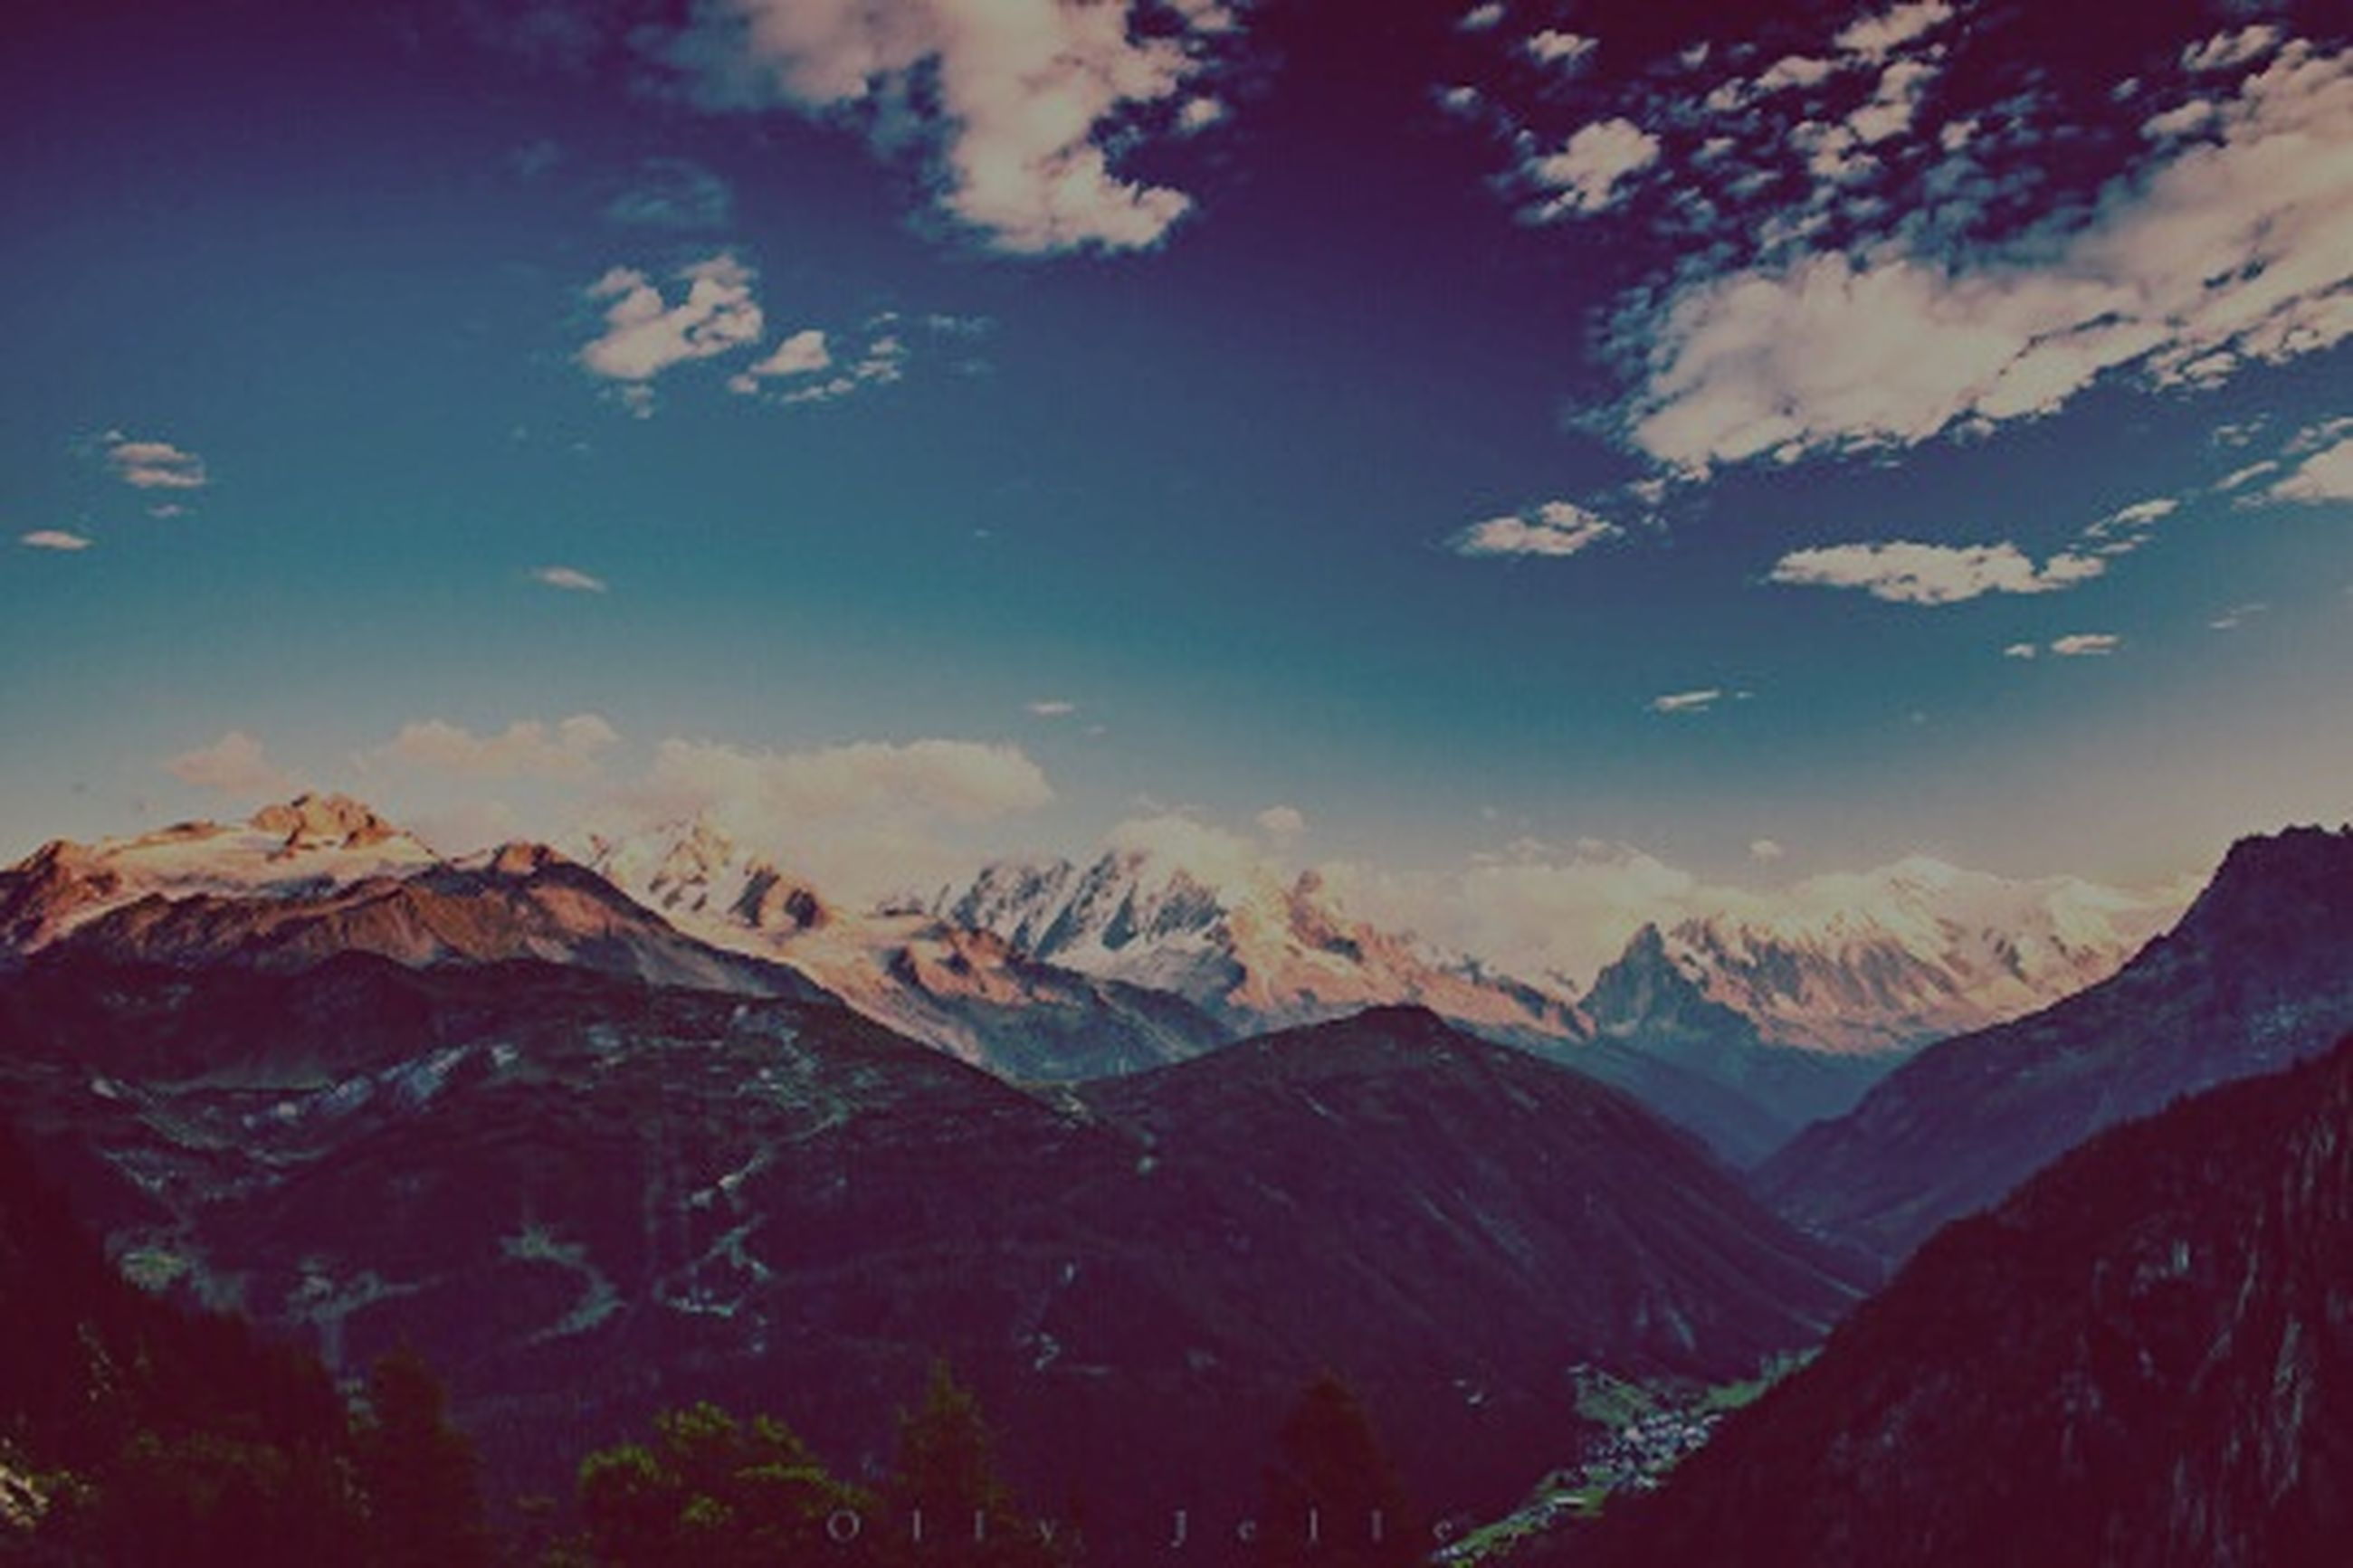 mountain, landscape, scenics, no people, mountain range, cloud - sky, outdoors, nature, beauty, sky, day, beauty in nature